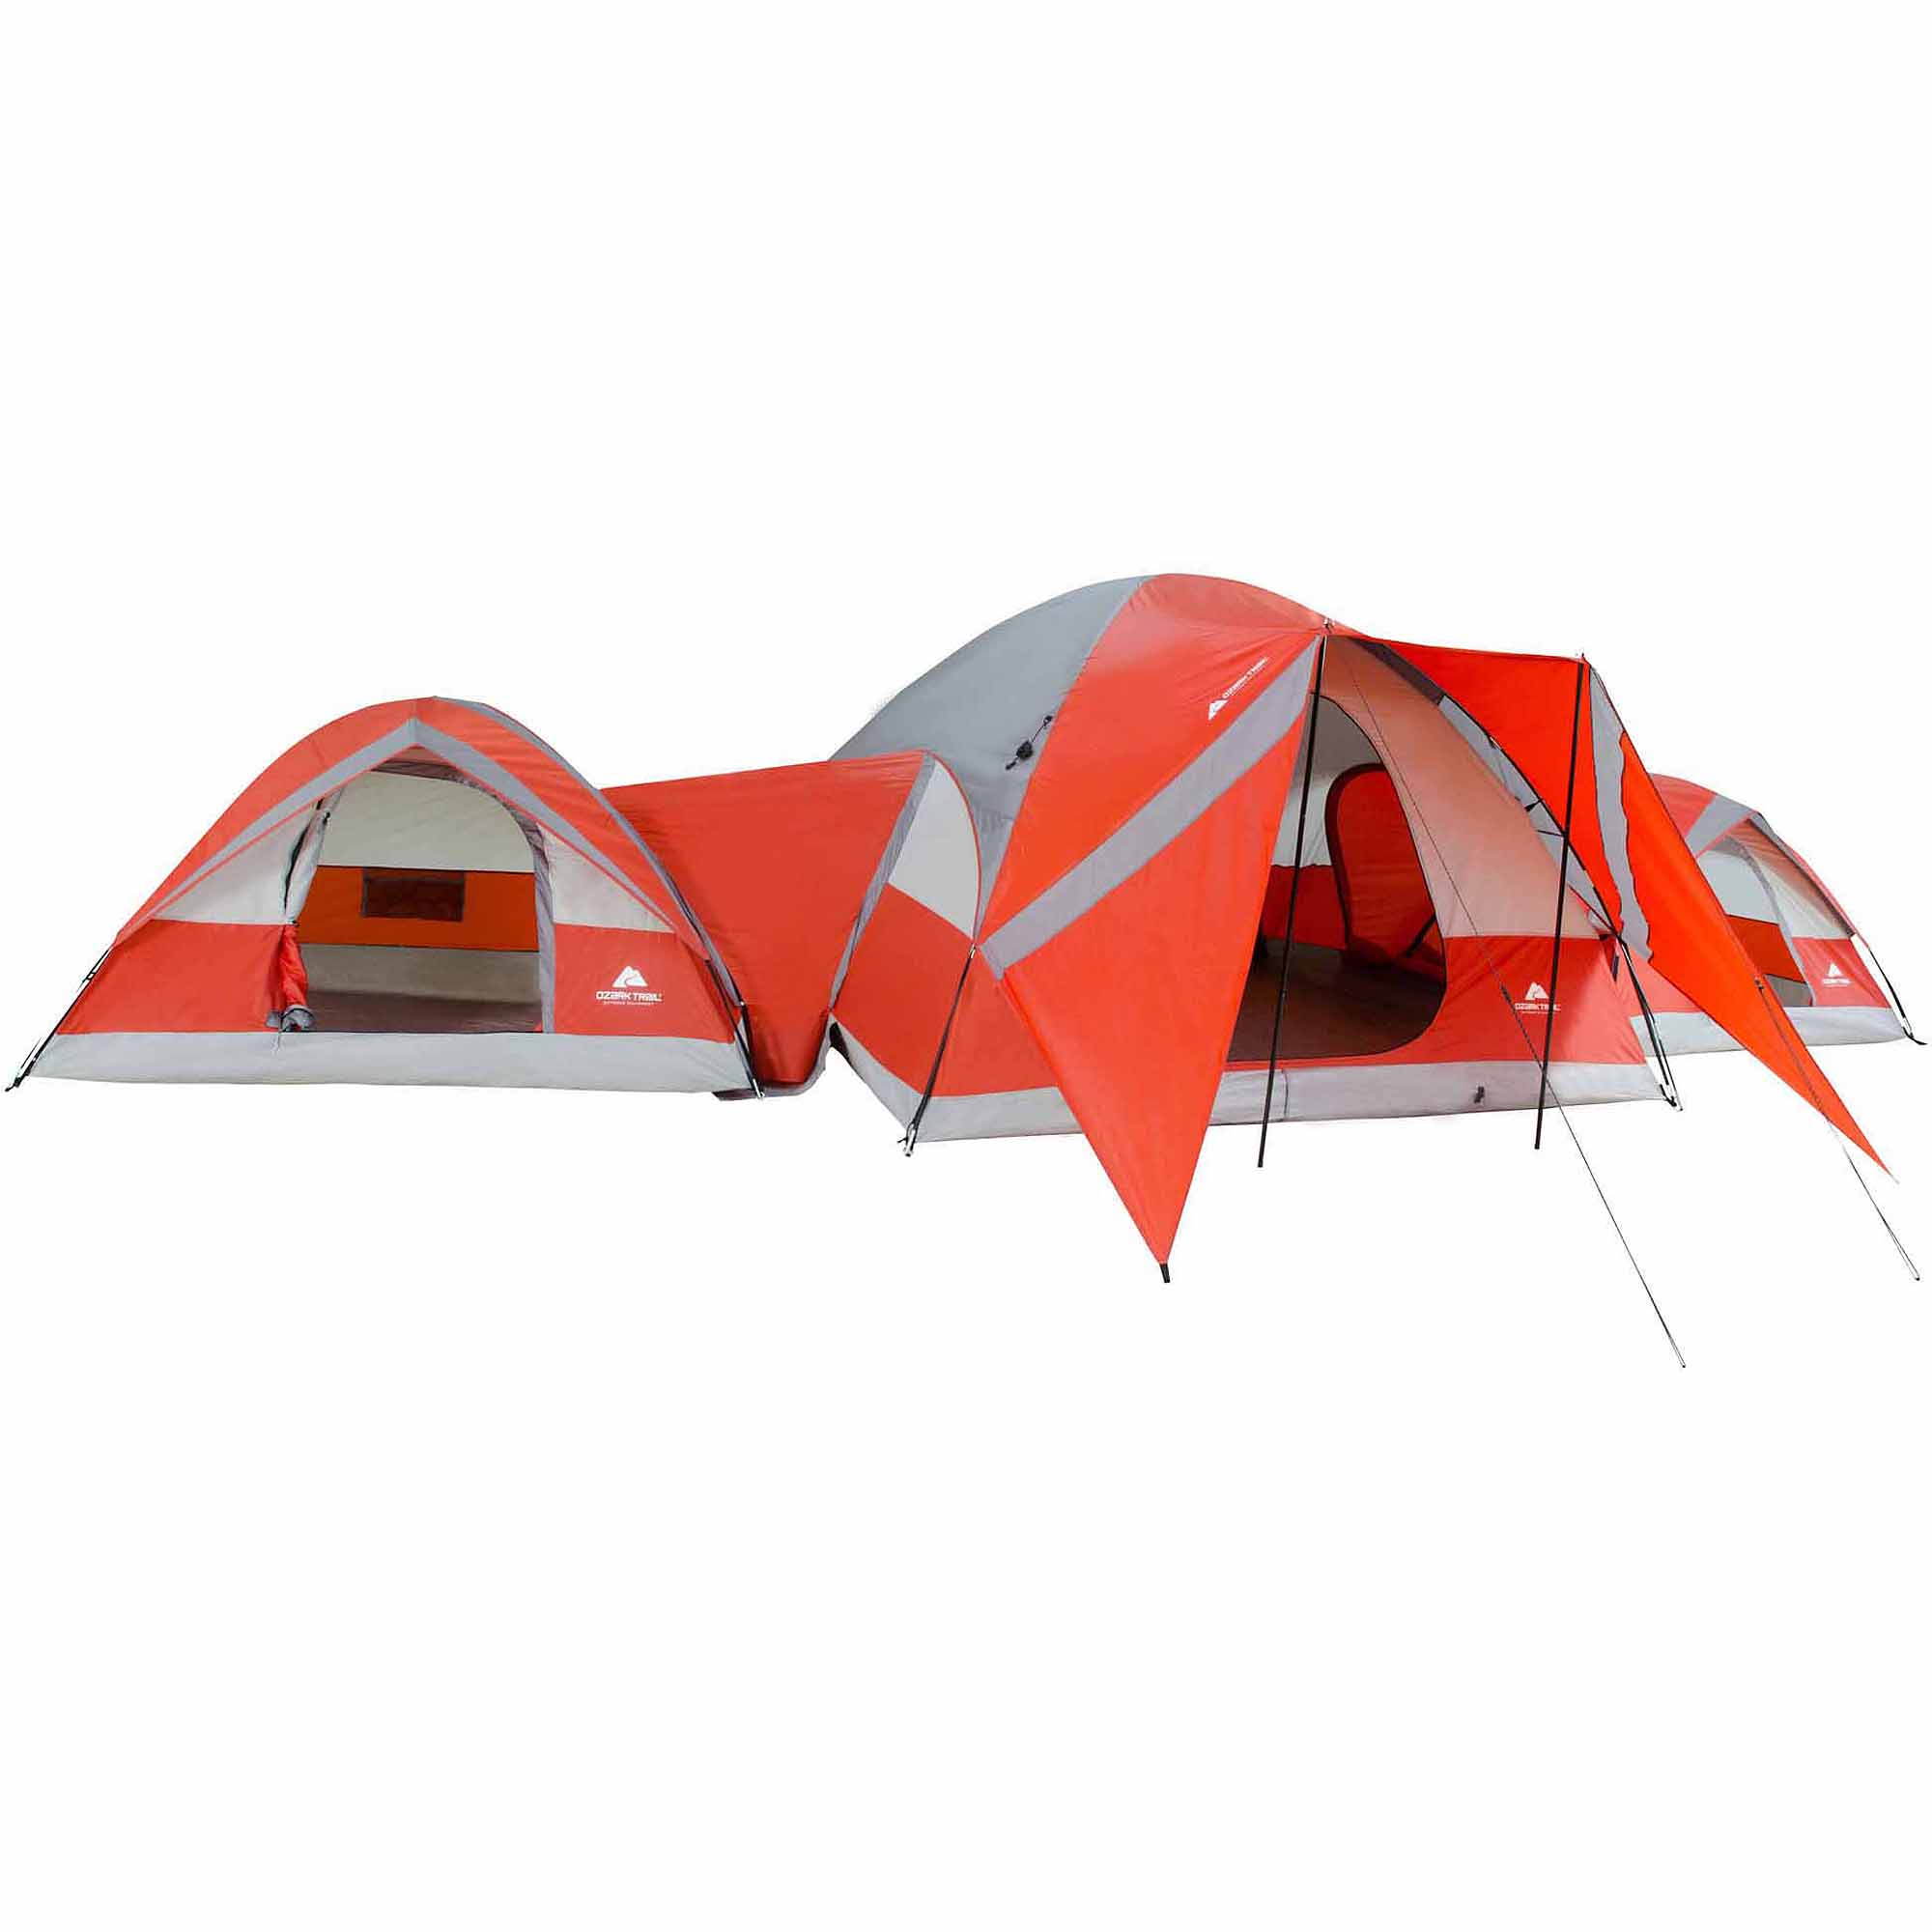 Ozark Trail ConnecTENT 10-person 3-Dome Tent  sc 1 st  Walmart & Ozark Trail ConnecTENT 10-person 3-Dome Tent - Walmart.com